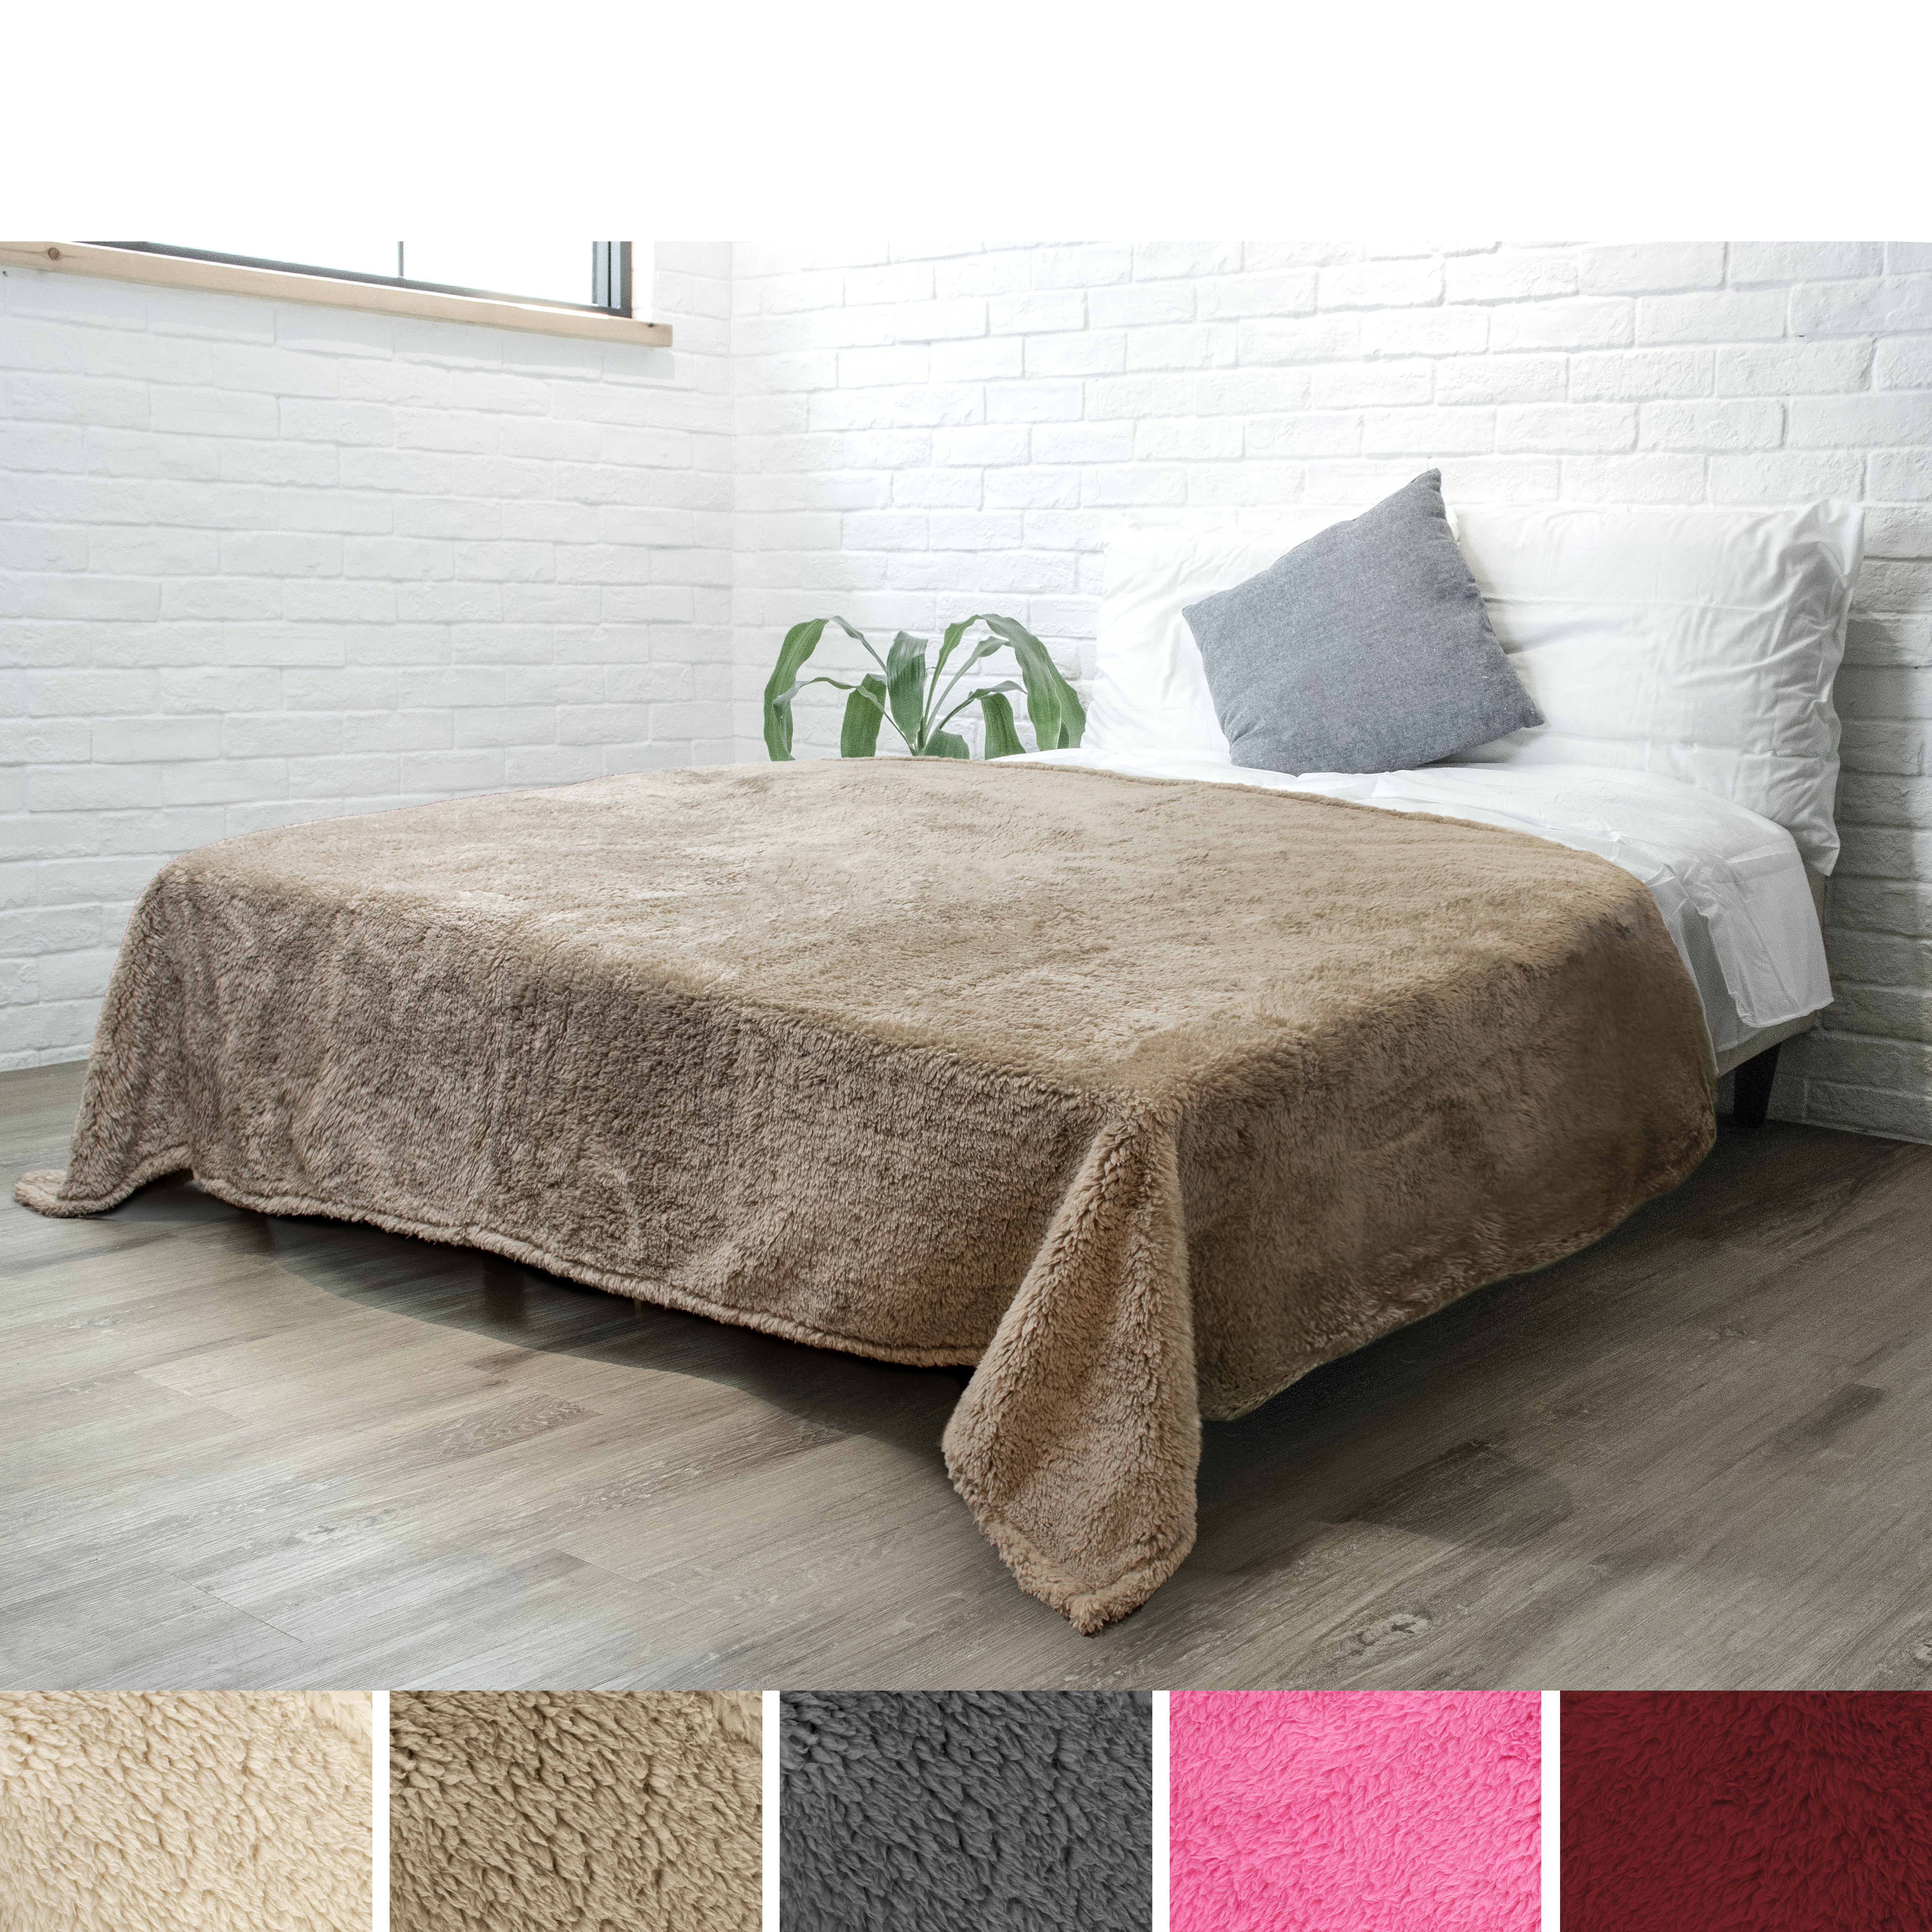 Soft-Fuzzy-Warm-Cozy-Throw-Blanket-with-Fluffy-Sherpa-Fleece-for-Sofa-Couch-Bed thumbnail 85